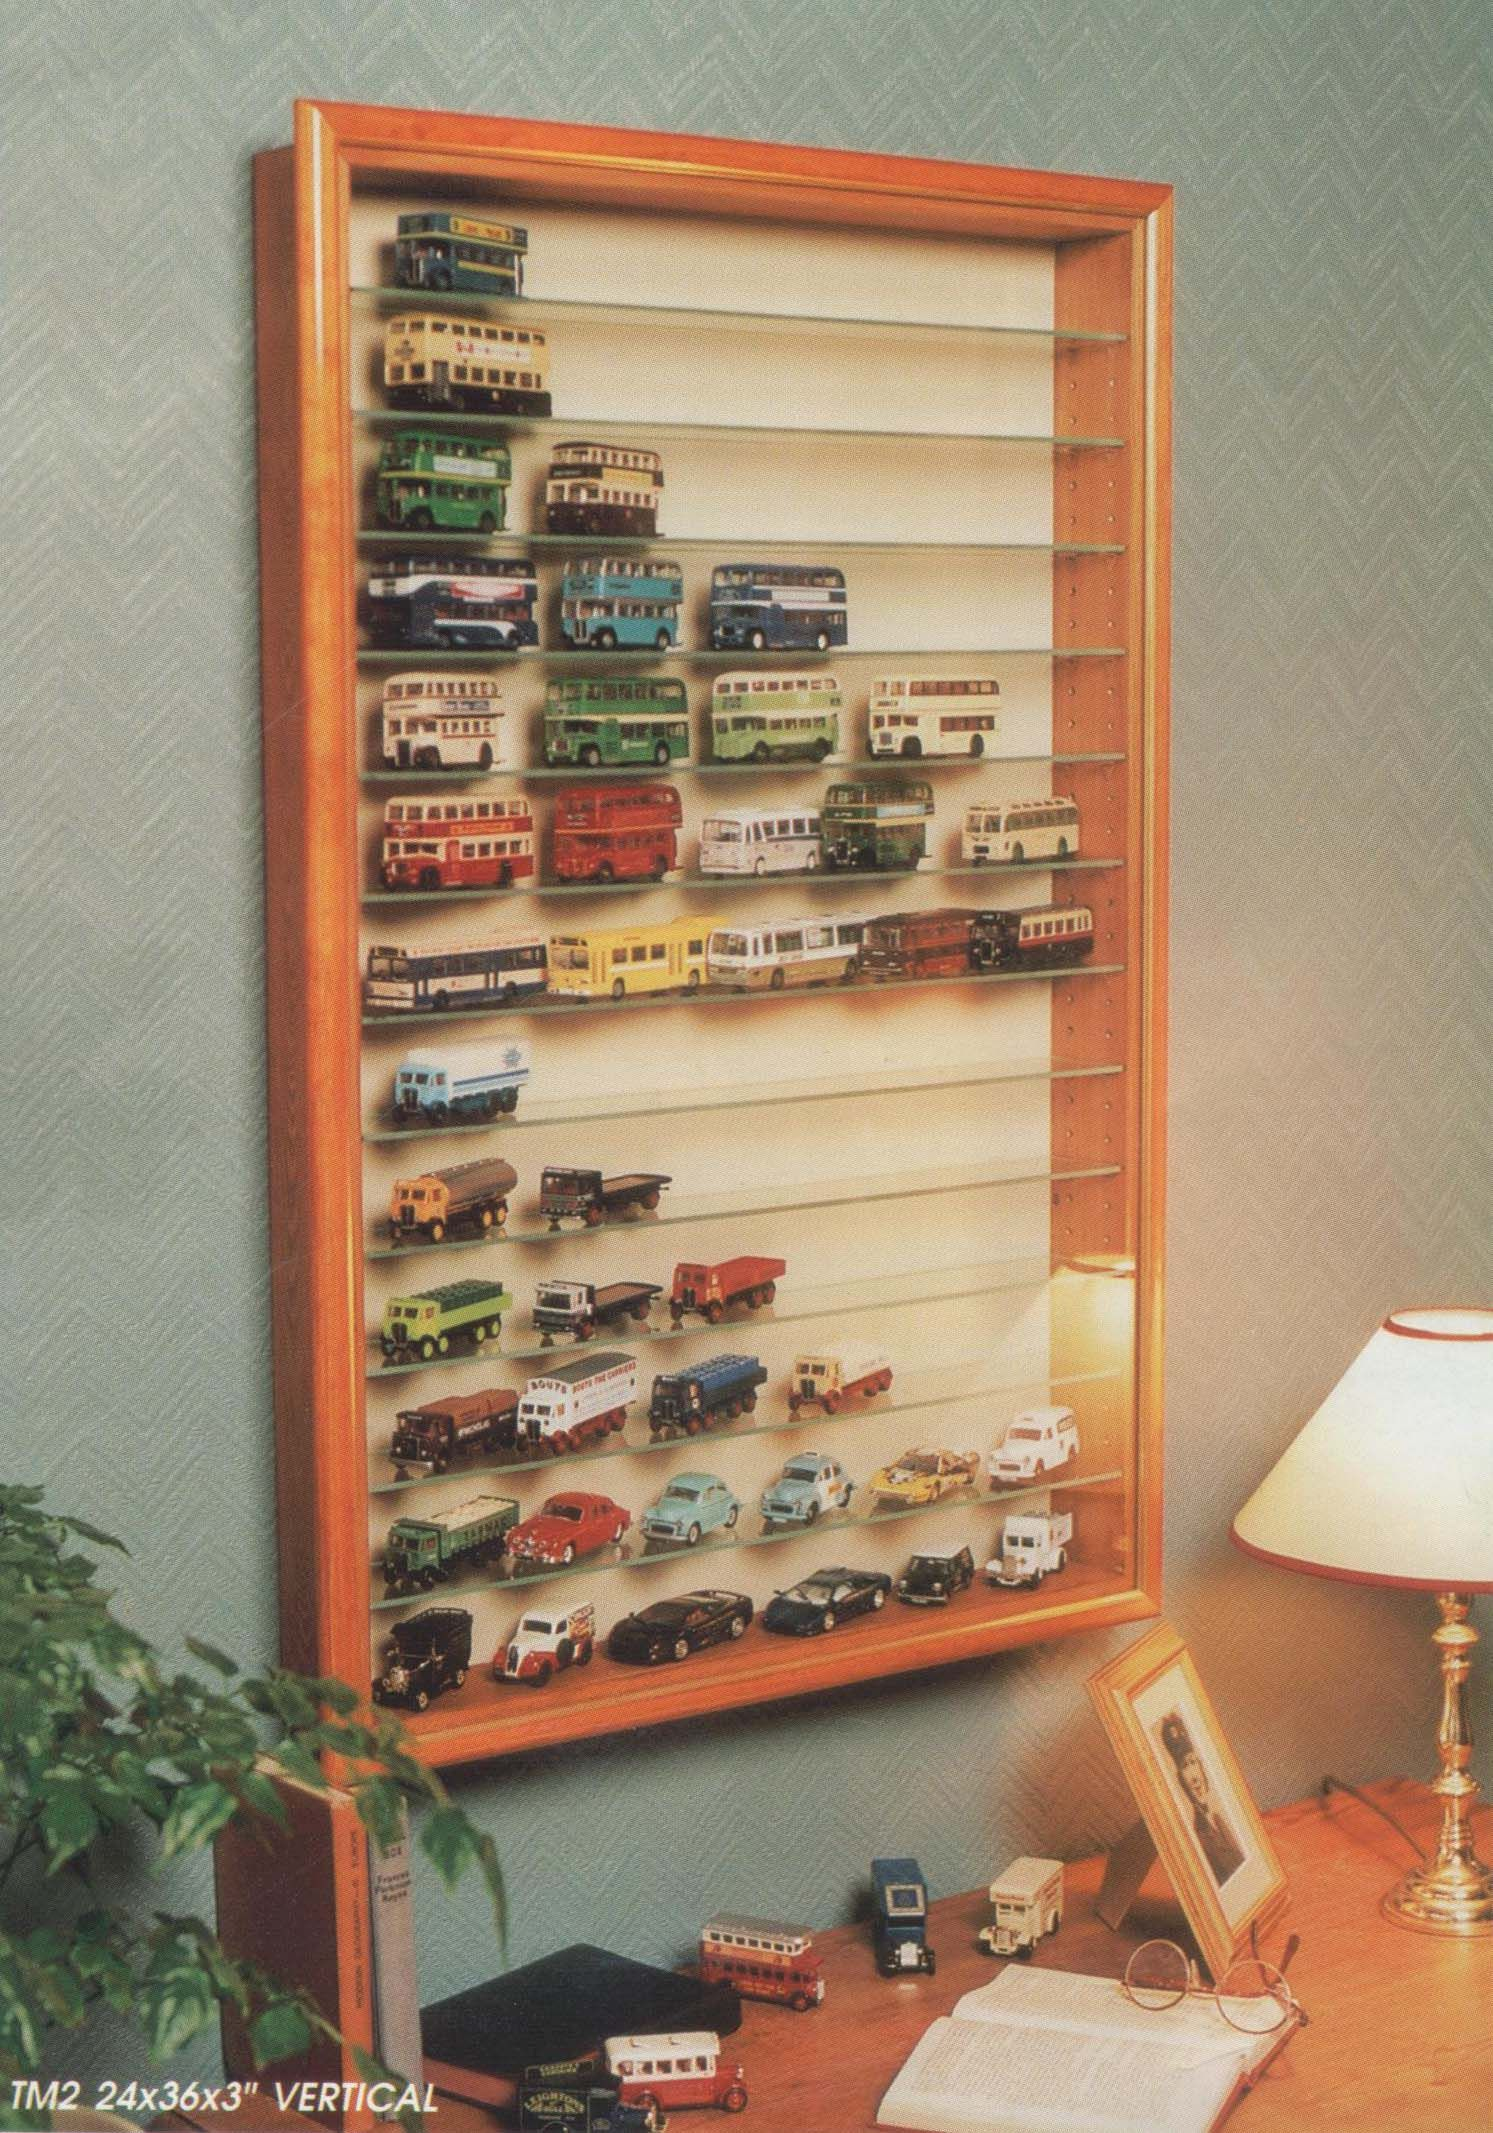 """TM2V Selby Range Wall Mounted Display Cabinet 24""""x36""""x3"""" includes"""